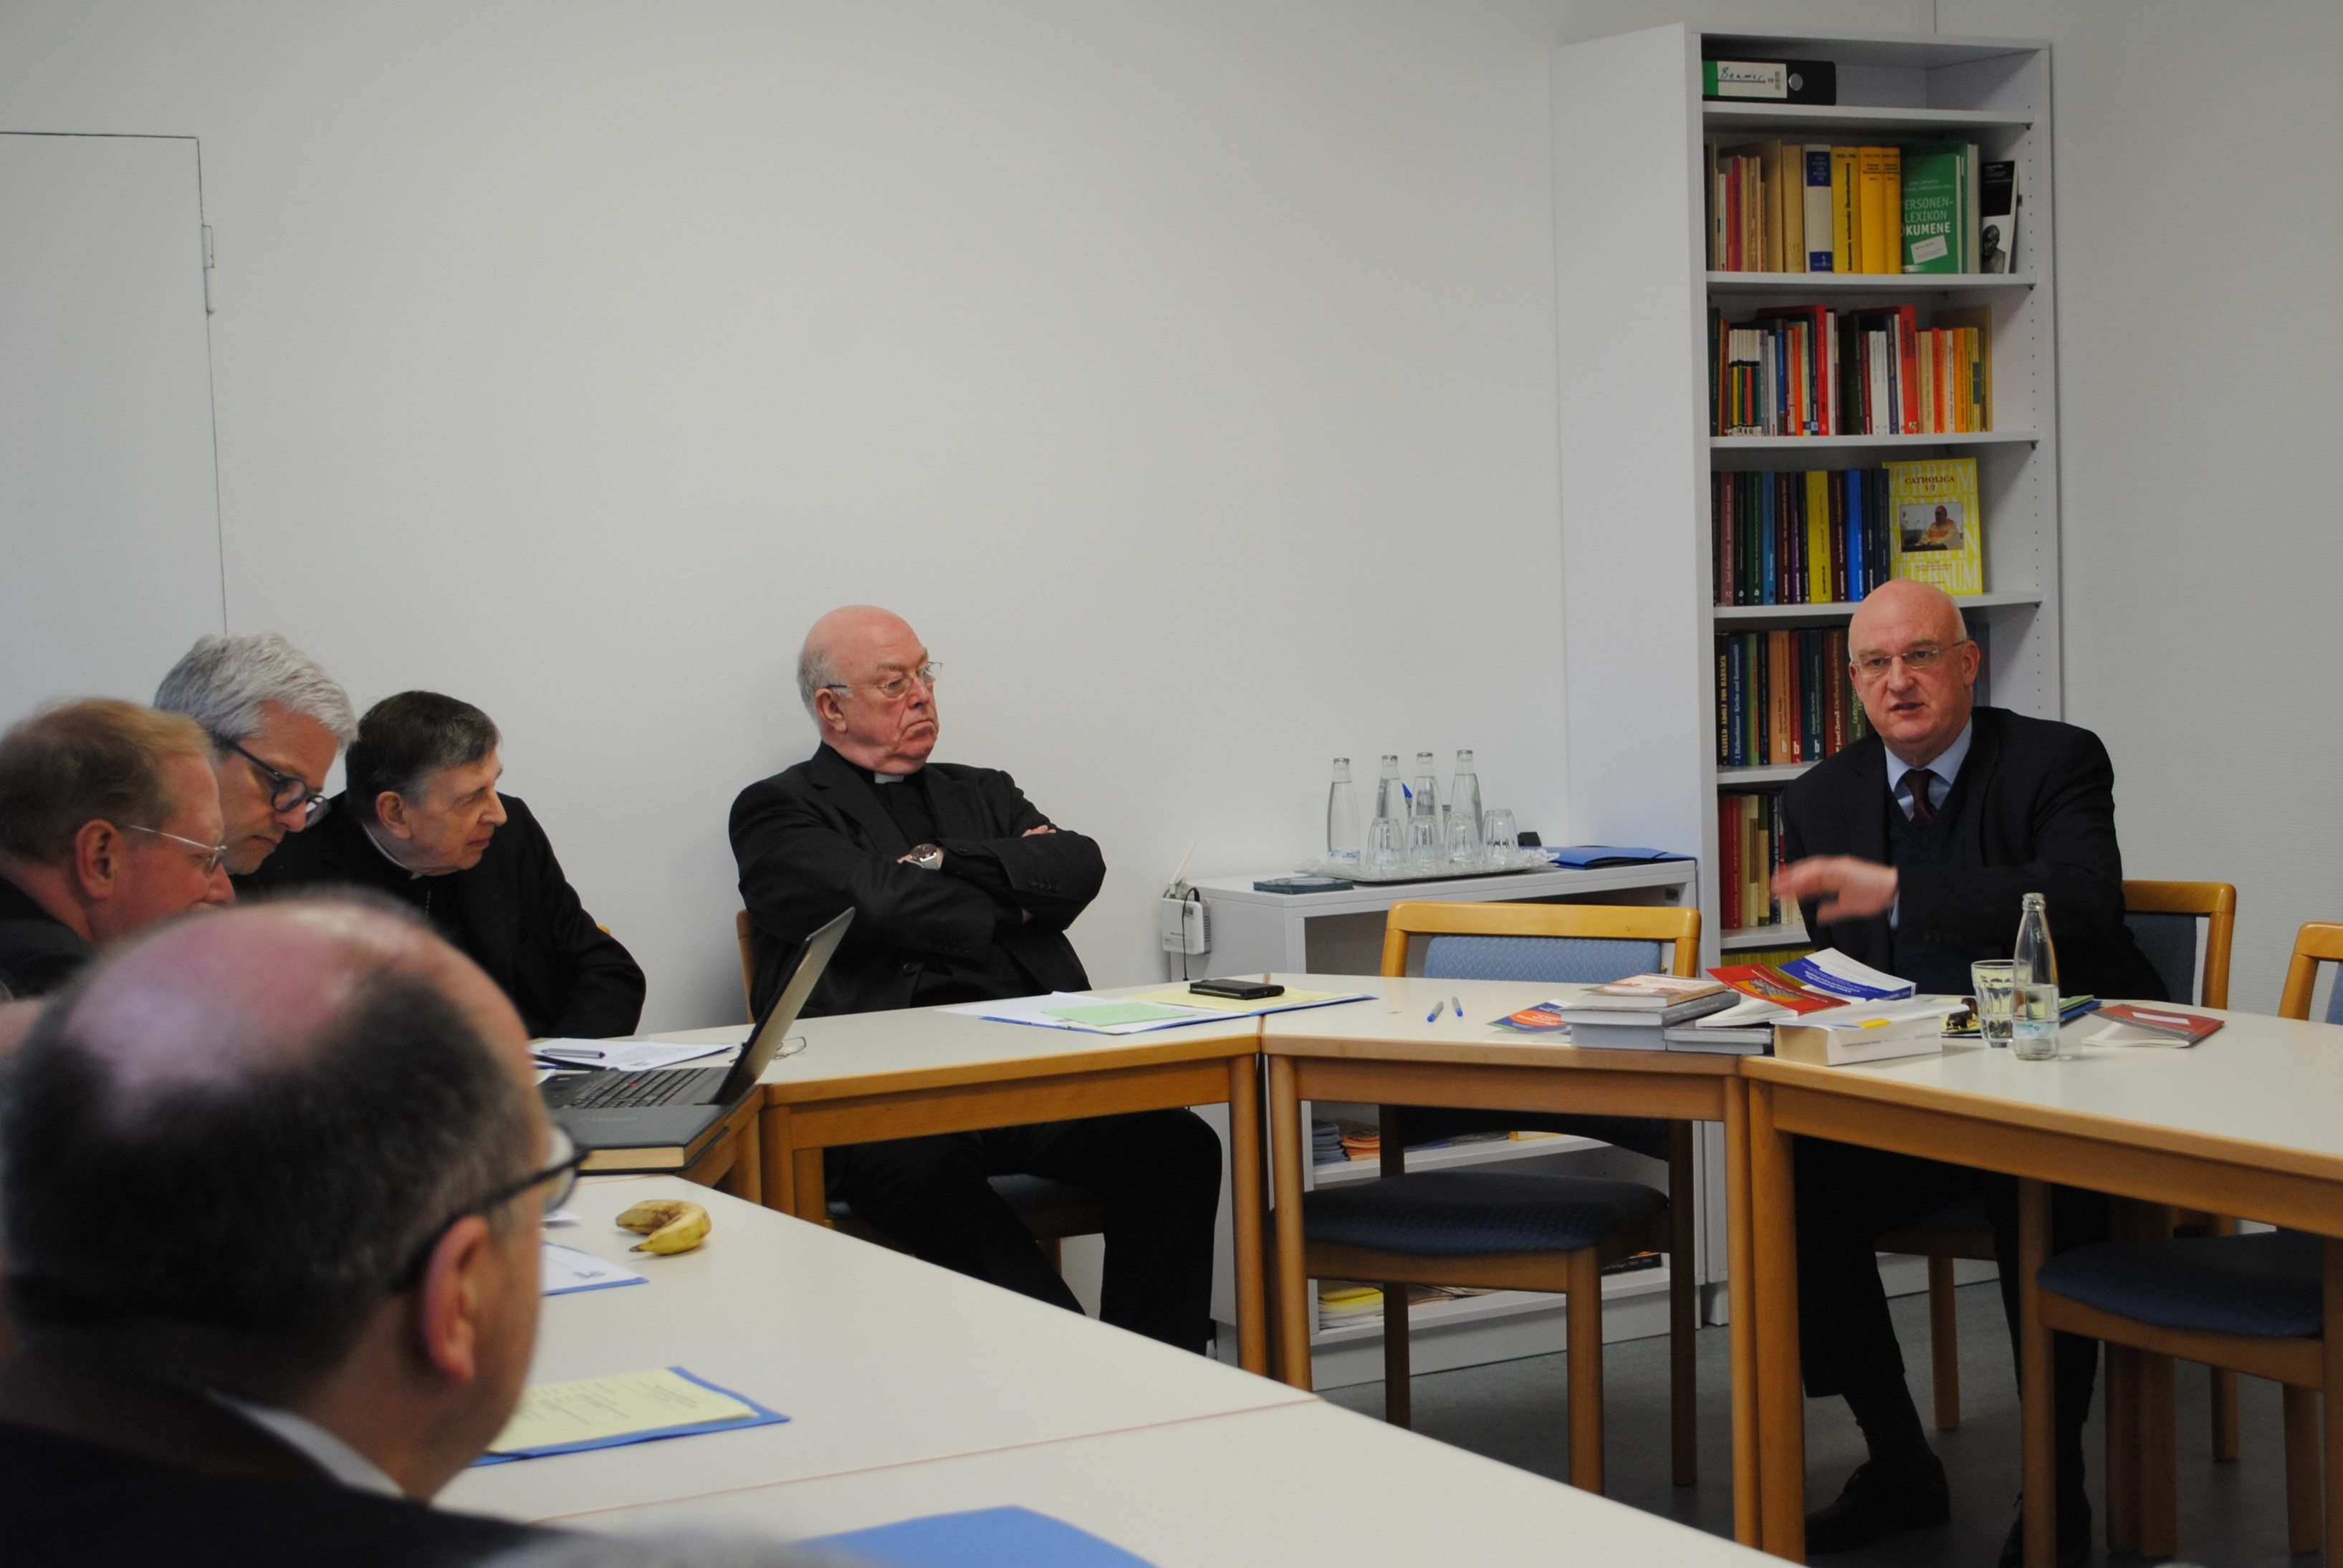 Prof. Dr. Wolfgang Thönissen informs the committee about the current work of the Möhler institute.